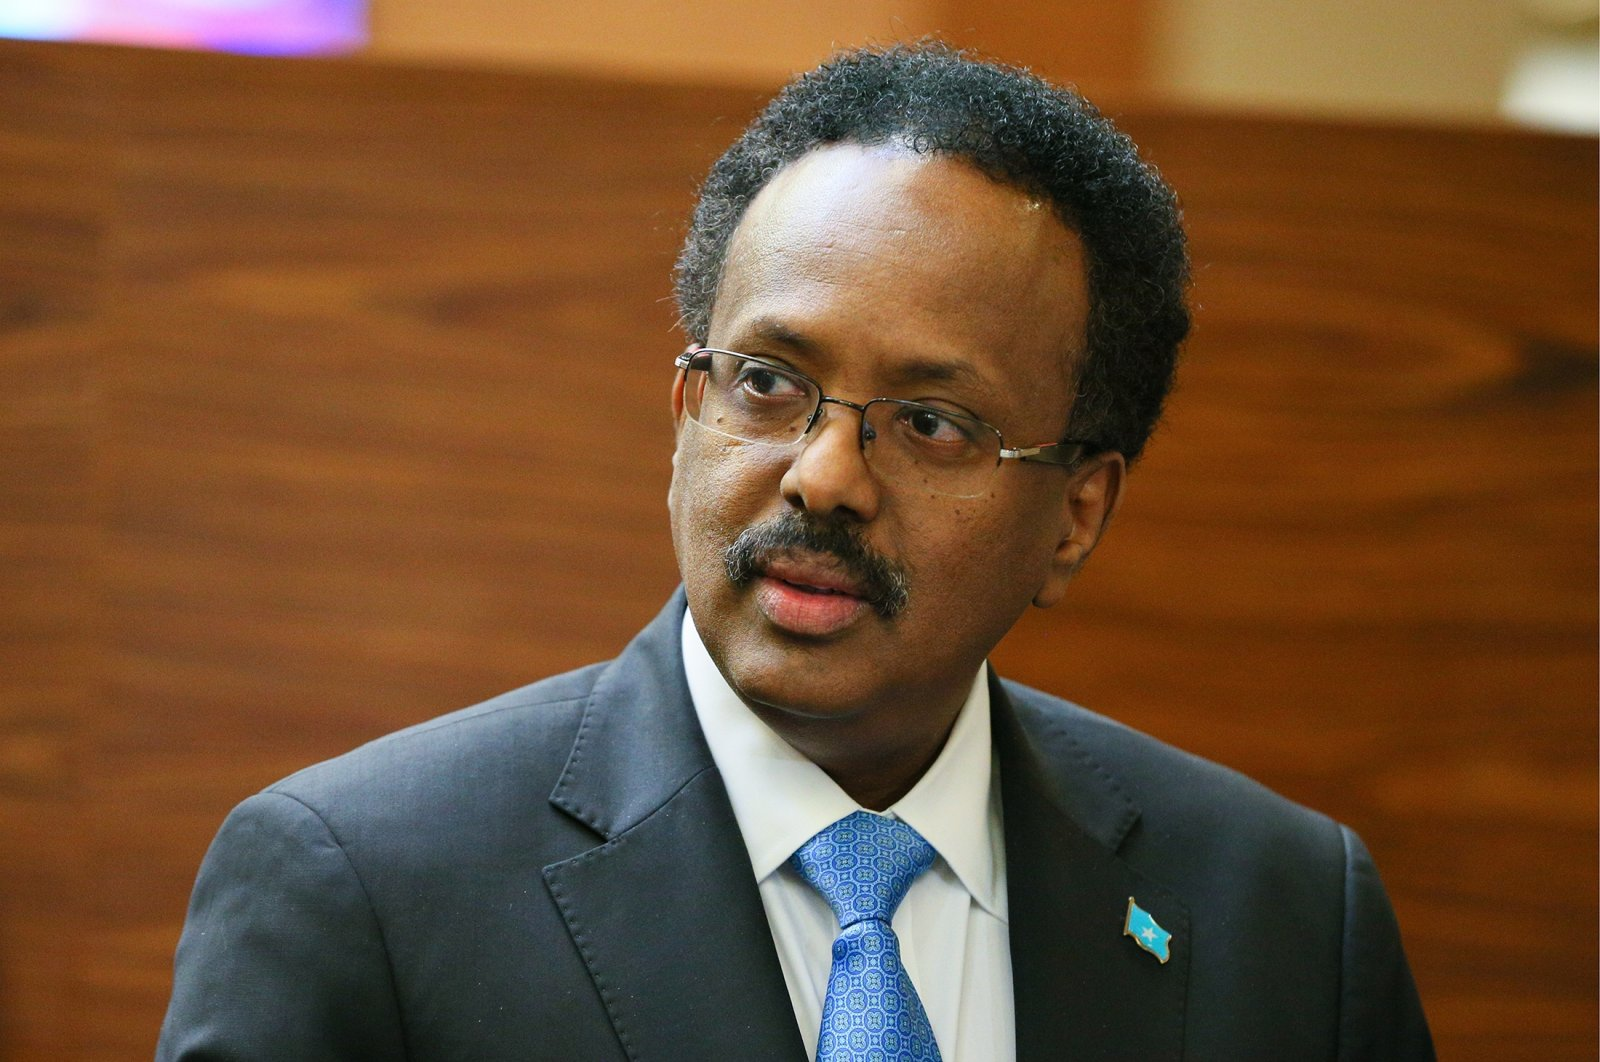 Somalia's President Mohamed Abdullahi Mohamed, known as Farmajo, is welcomed at Sochi International Airport as he arrives to take part in the 2019 Russia-Africa Summit, Sochi, Russia, Oct. 22, 2019. (Getty Images)